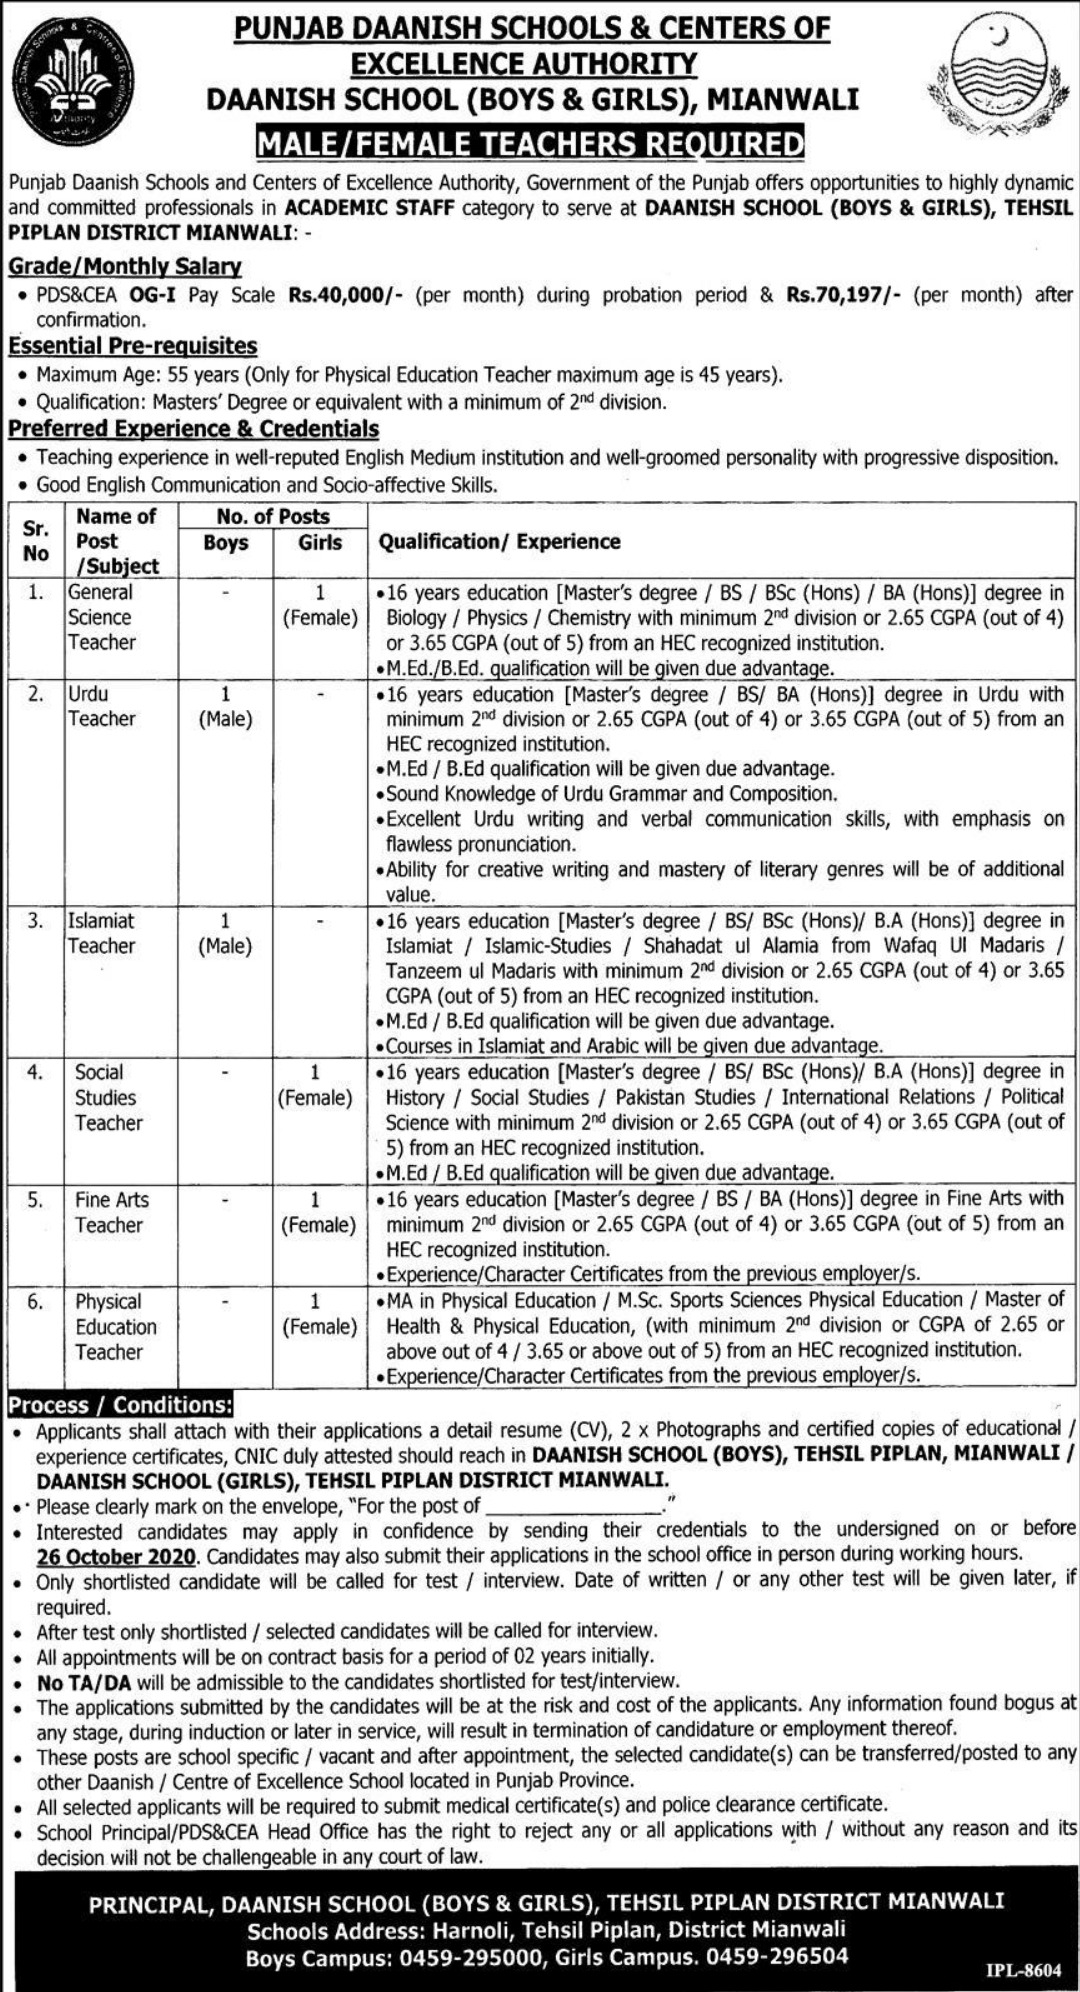 Punjab Daanish Schools & Centers of Excellence Authority Jobs October 2020